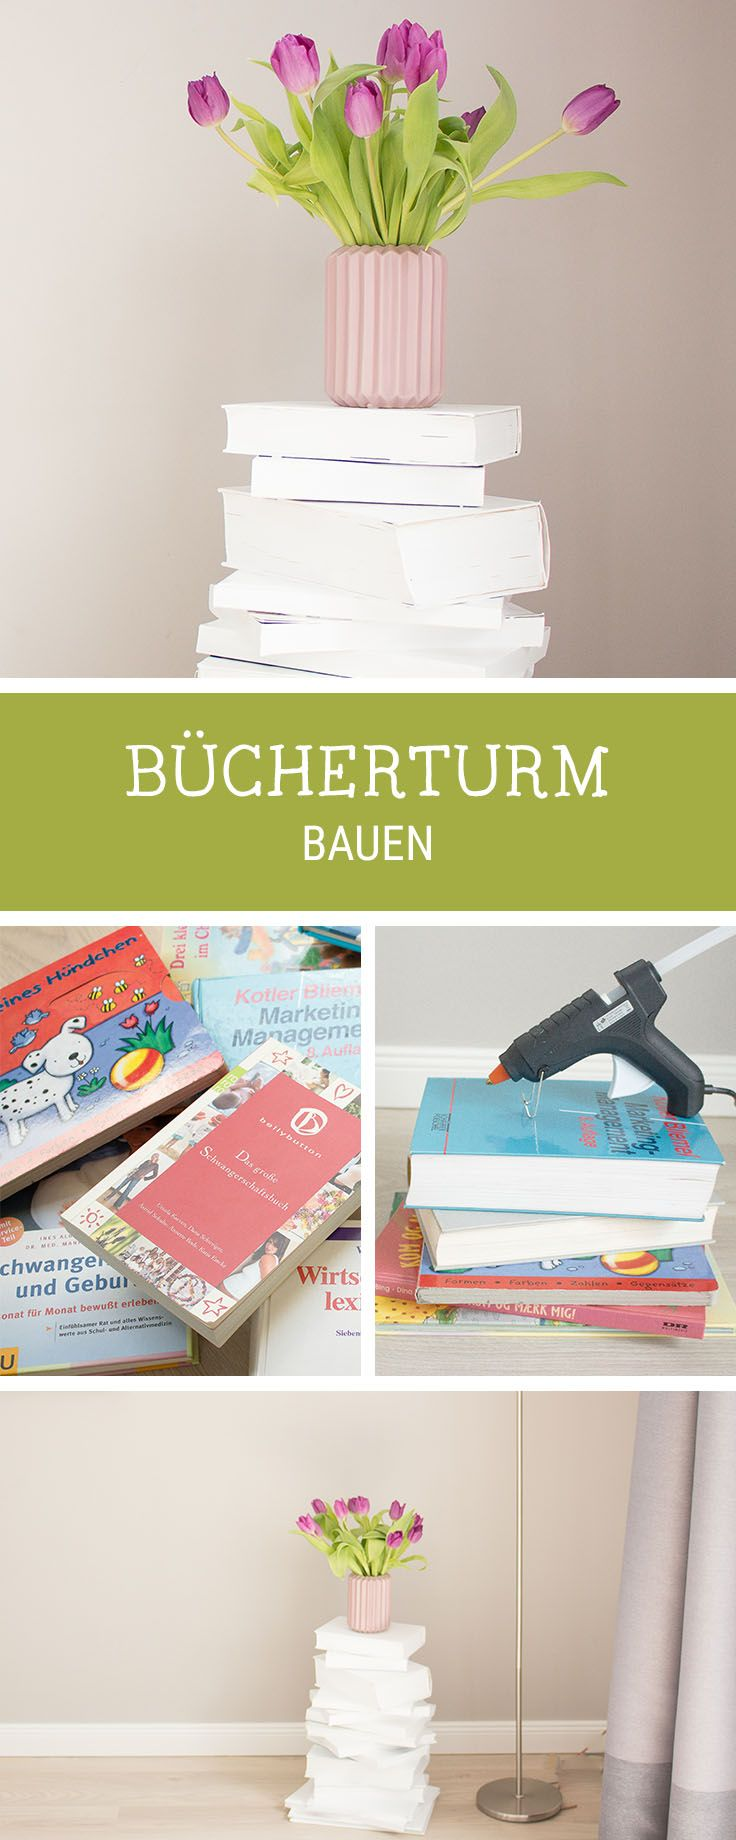 DIY-Anleitung für einen Tisch aus alten Büchern, Upcycling-Idee / upcycling idea for a side table made of old books via DaWanda.com